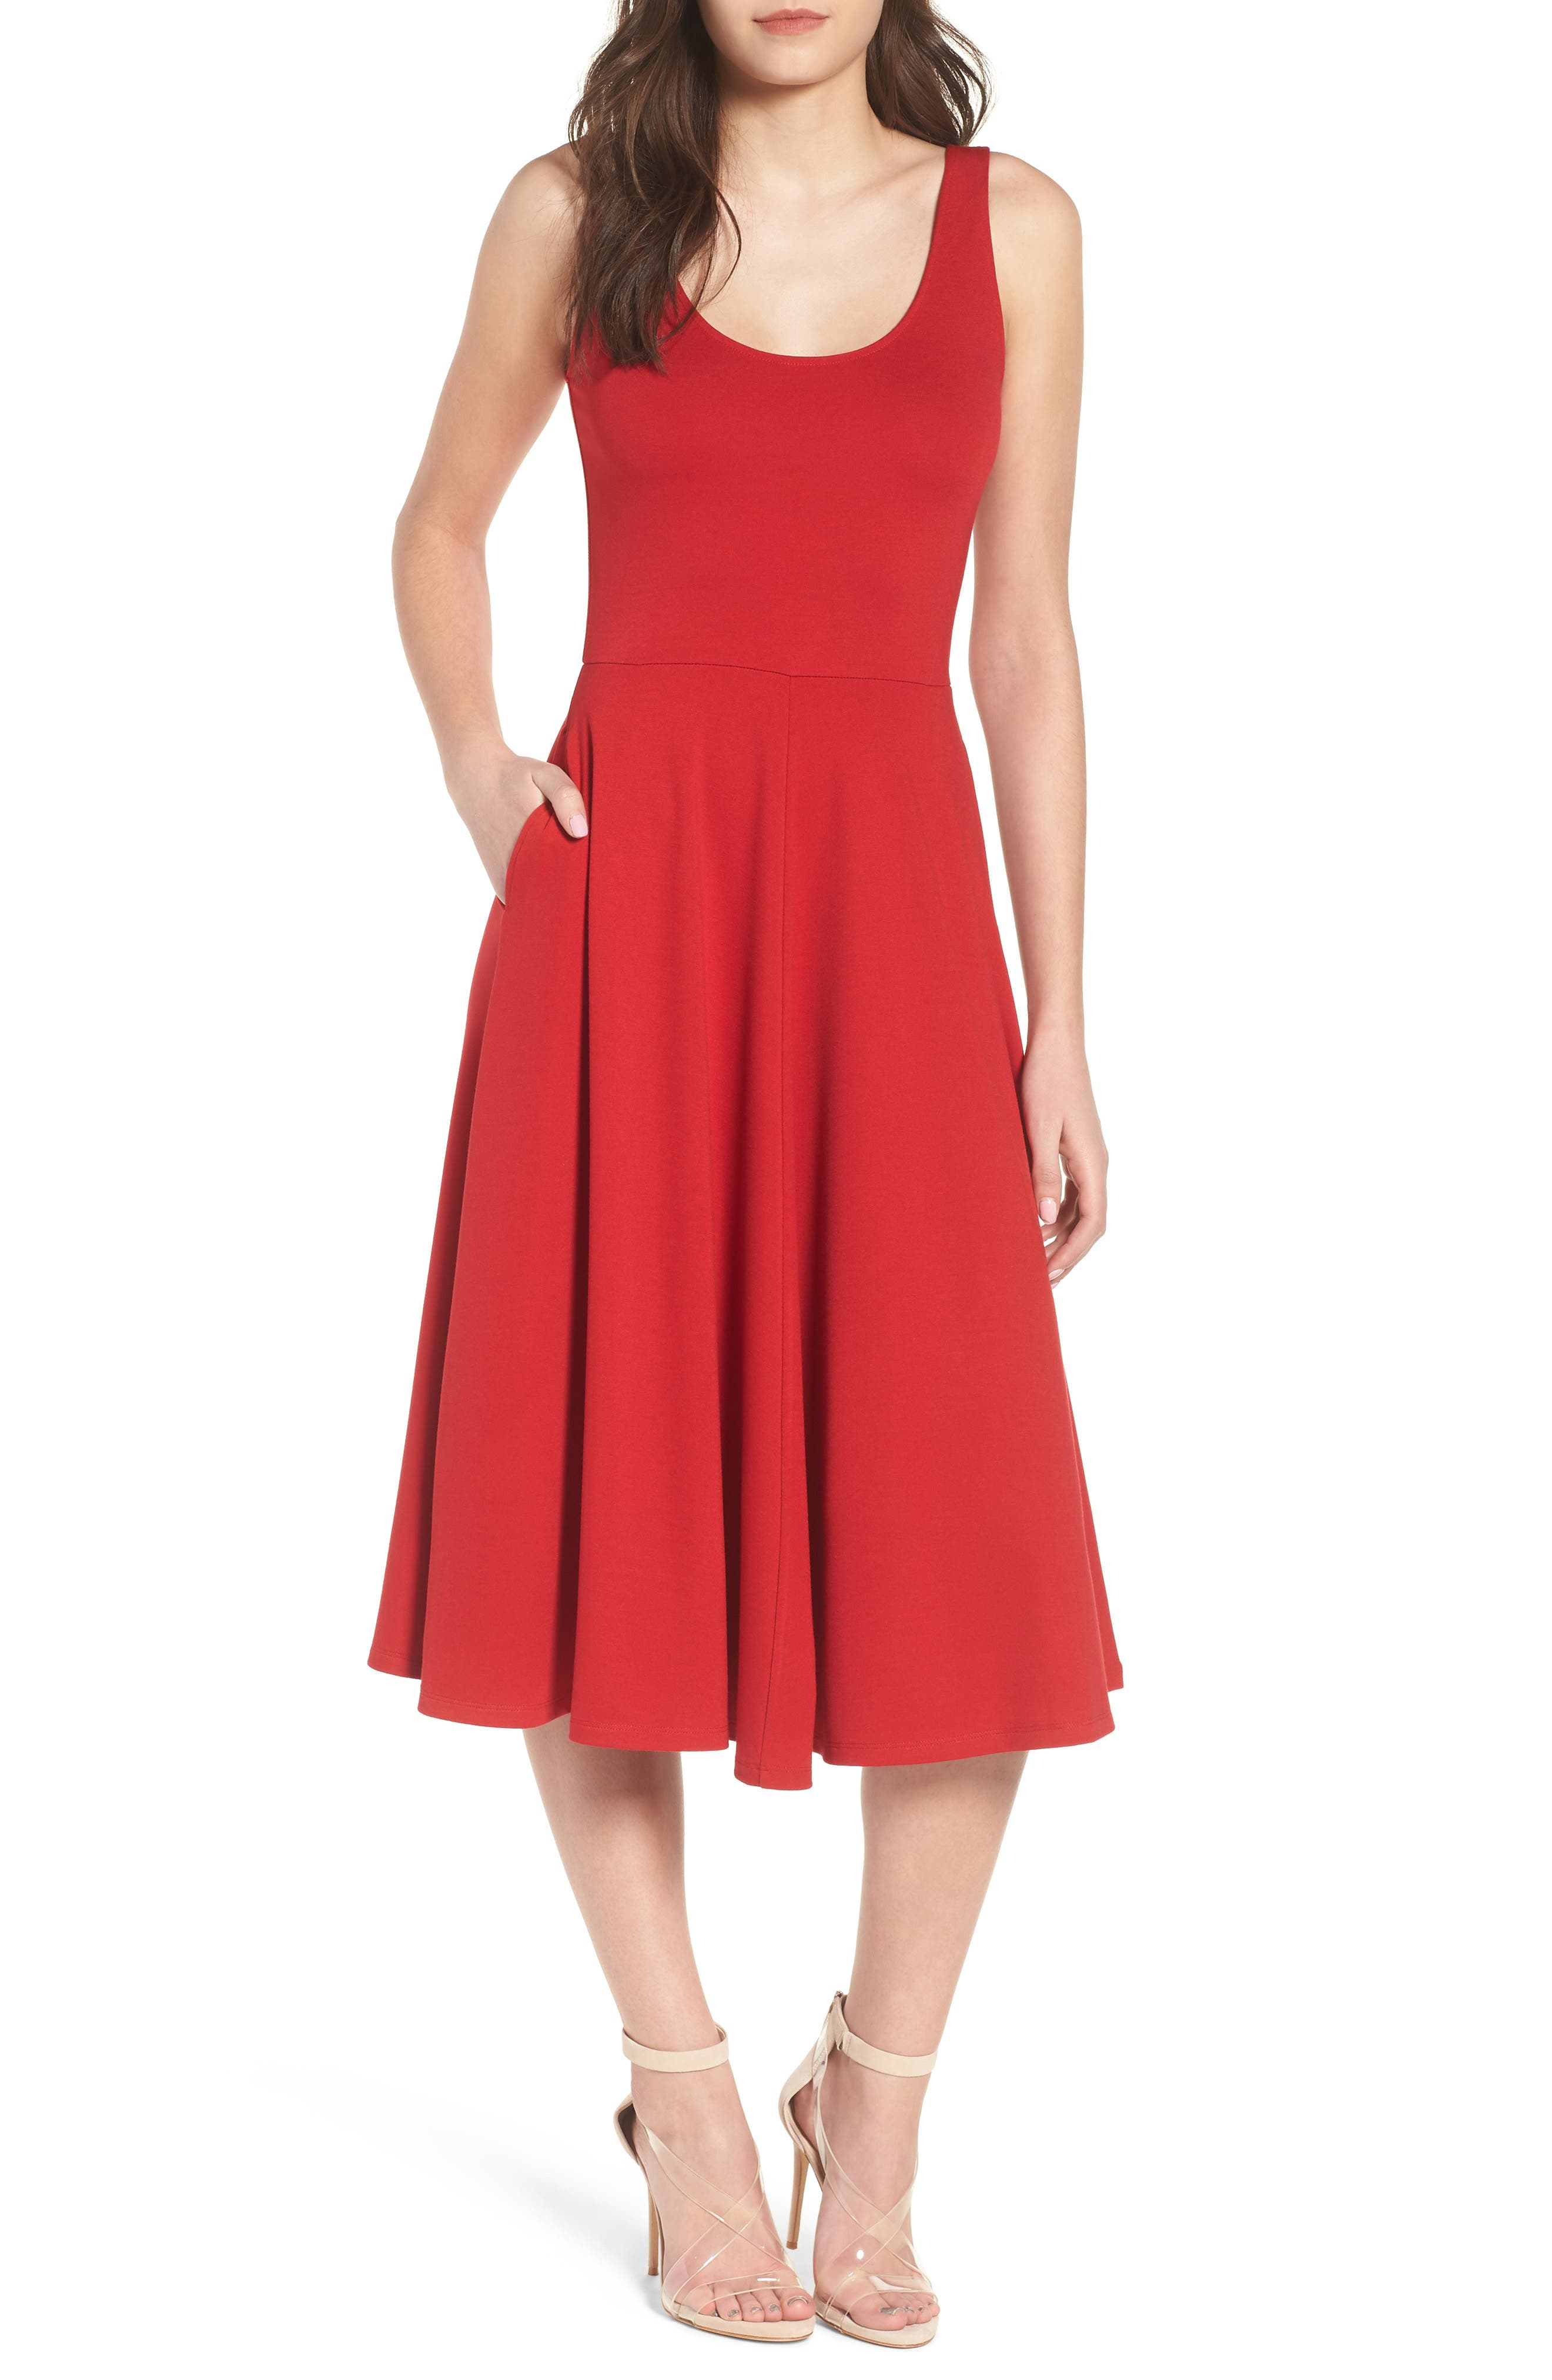 Stretch Knit Midi Dress,                             Main thumbnail 1, color,                             Red Couture